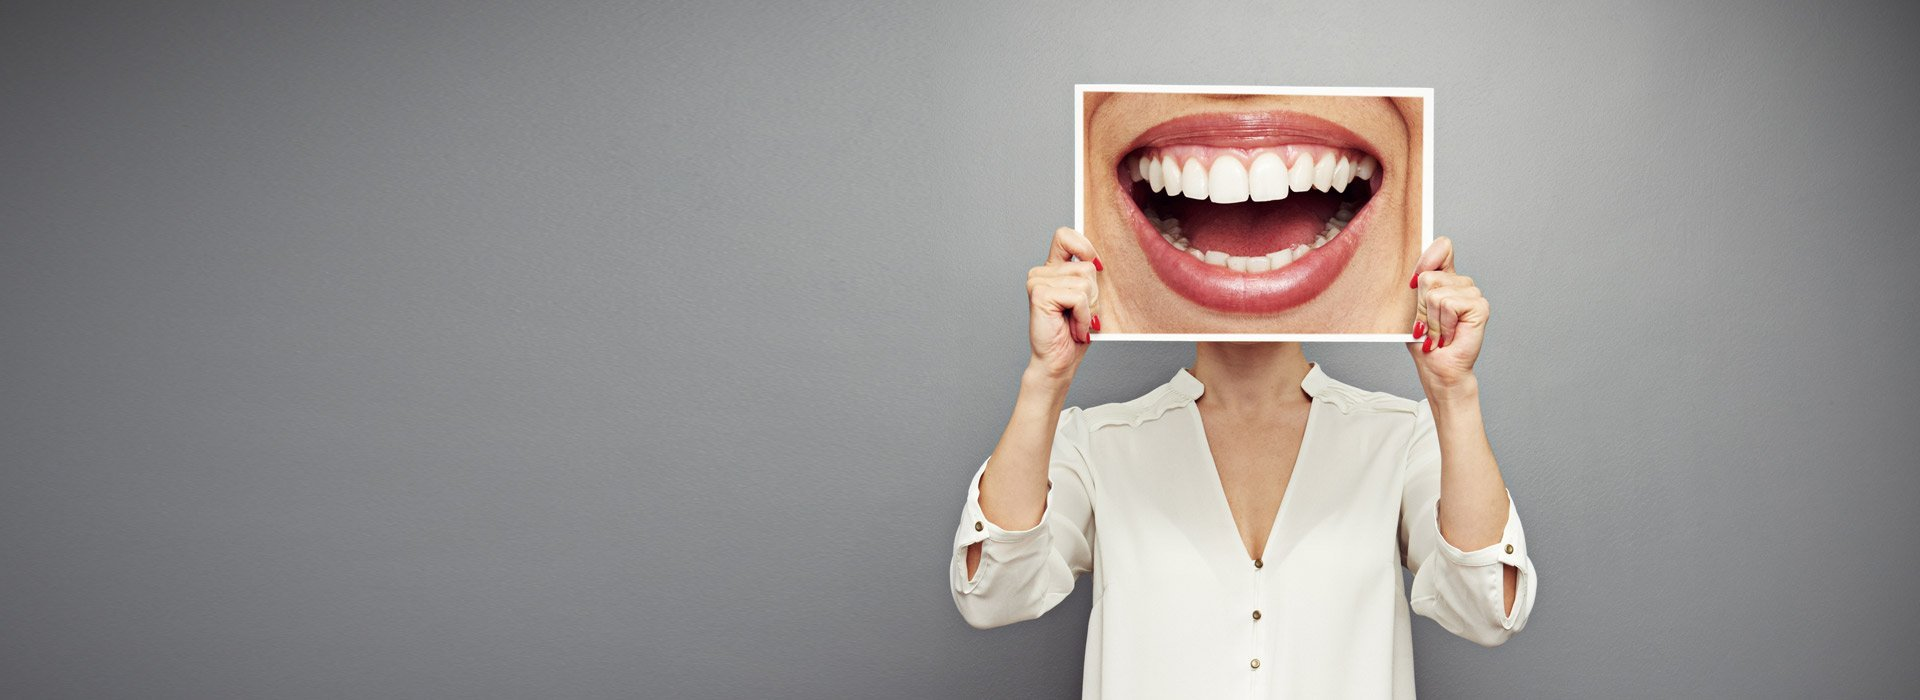 woman holding up a enlarge mouth smiling picture